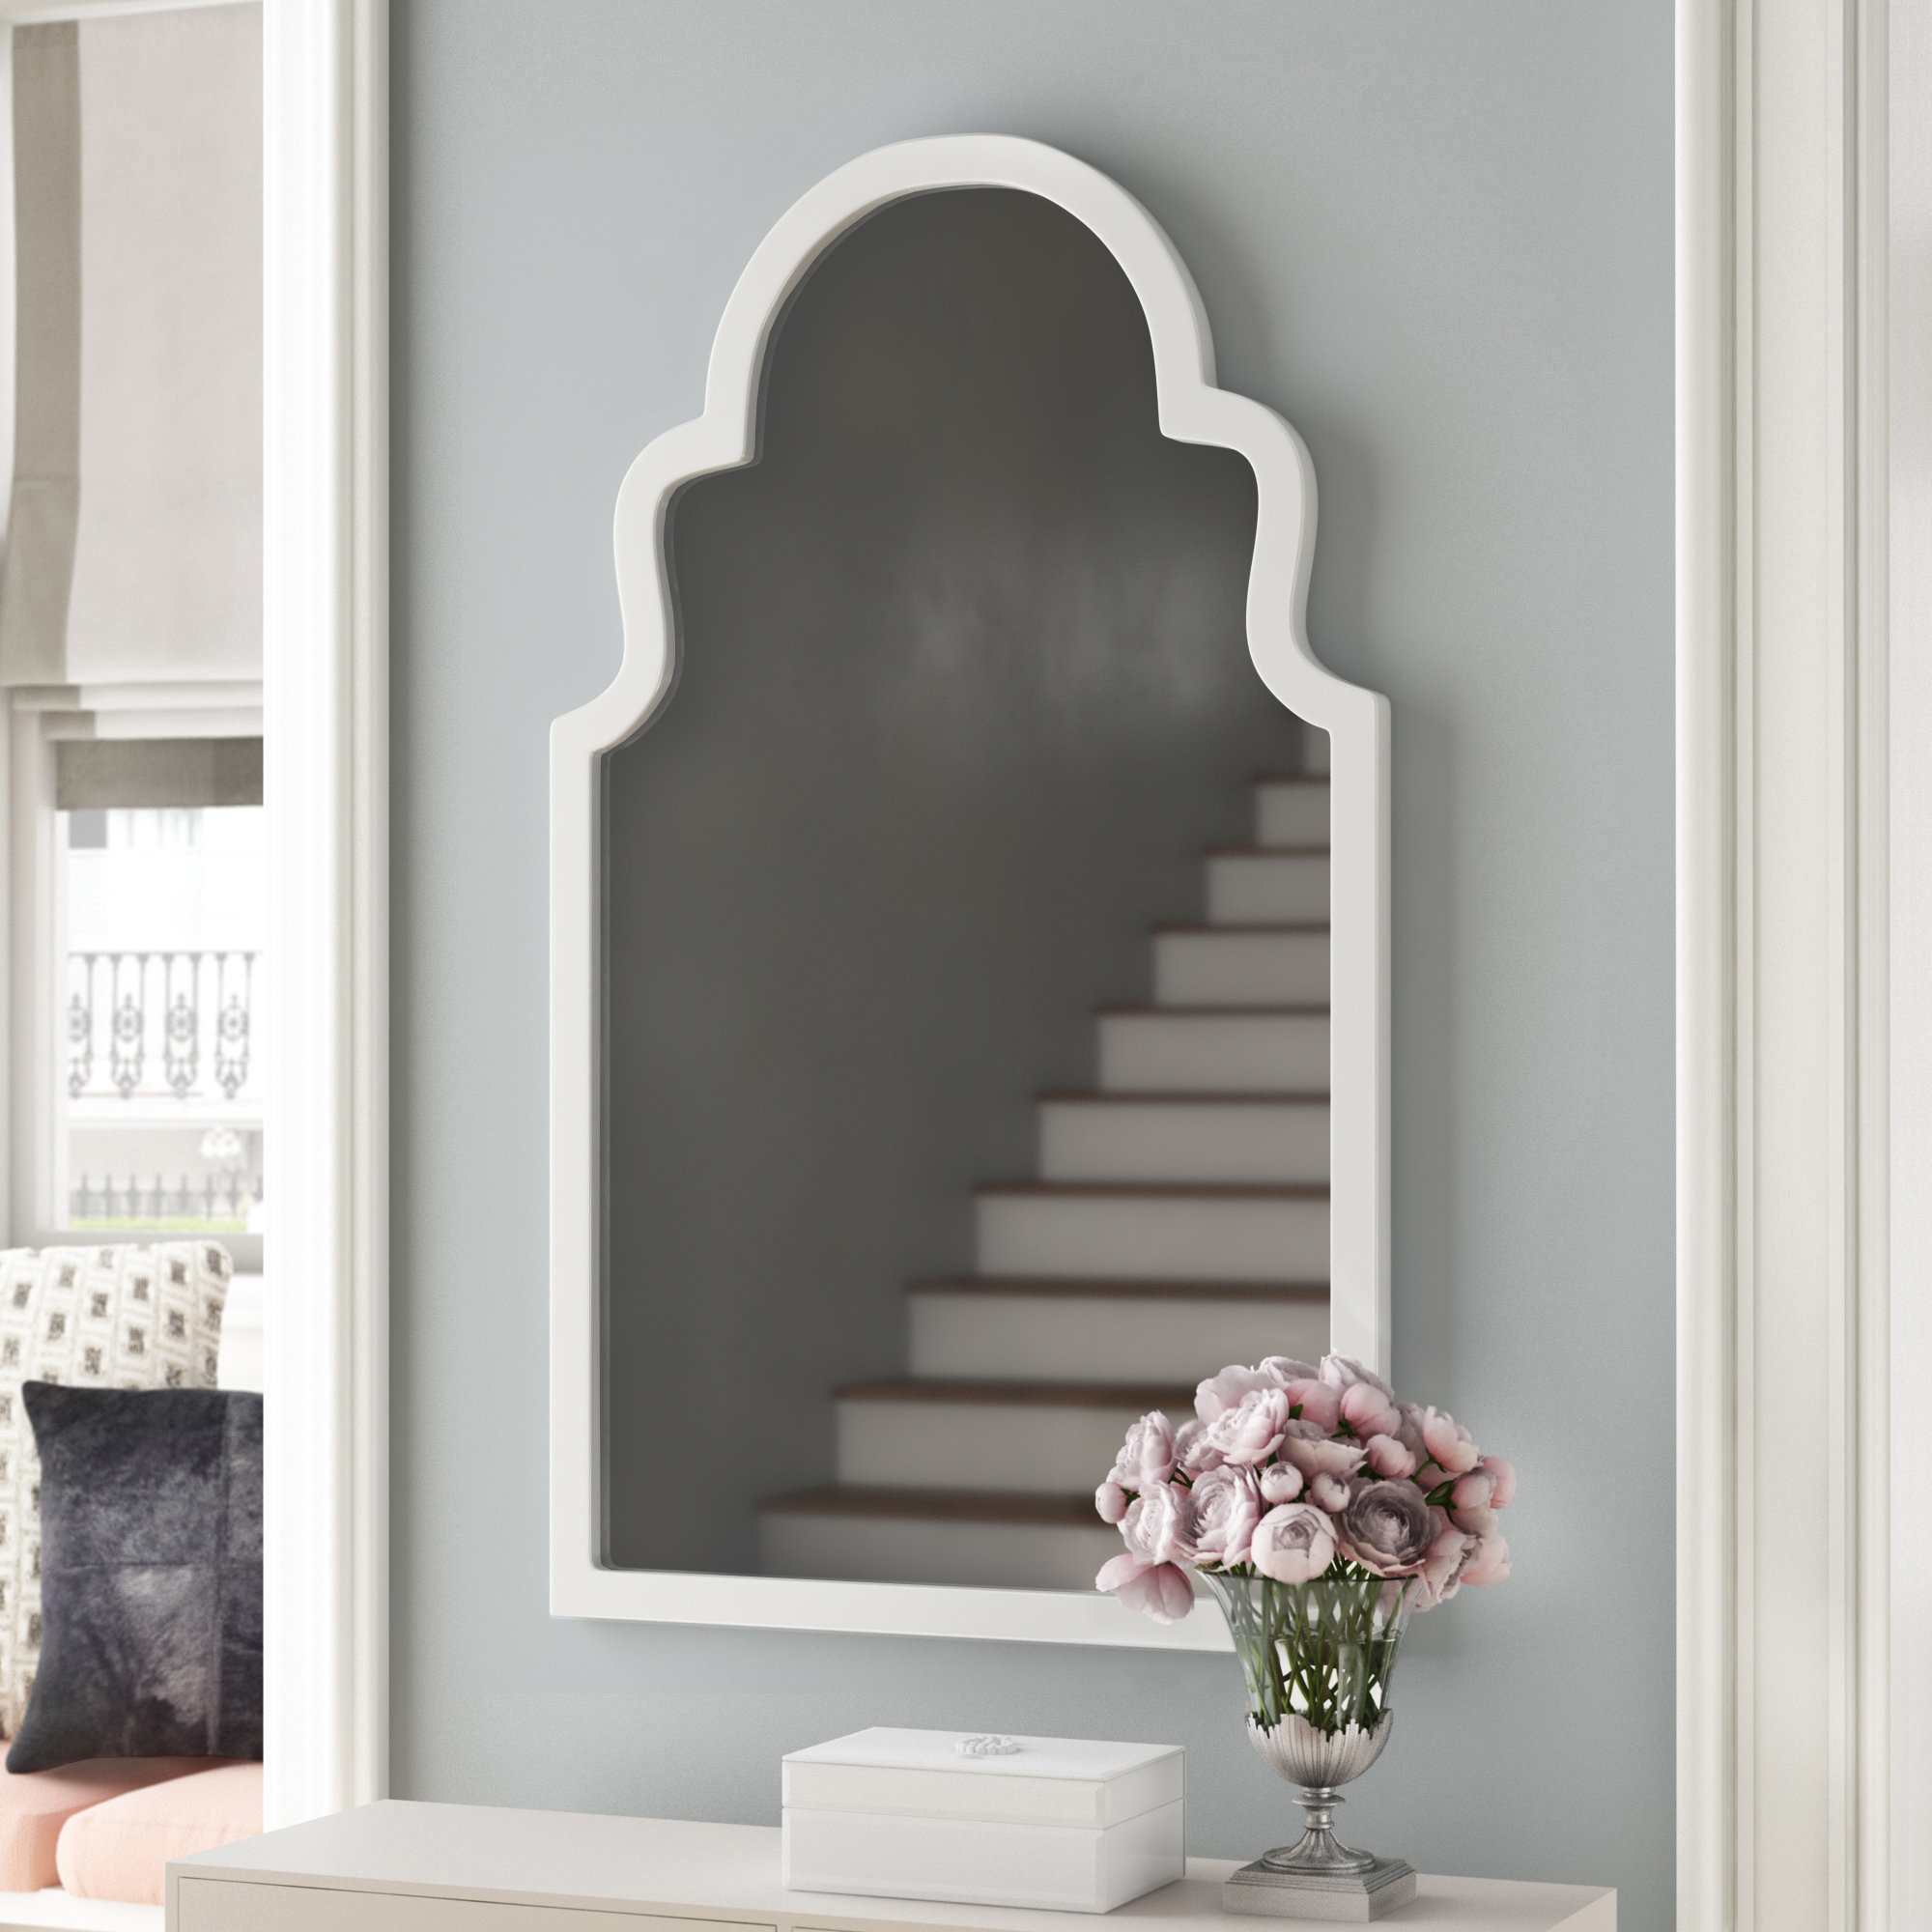 Arch Vertical Wall Mirror Pertaining To Most Recently Released Arch Vertical Wall Mirrors (Gallery 1 of 20)